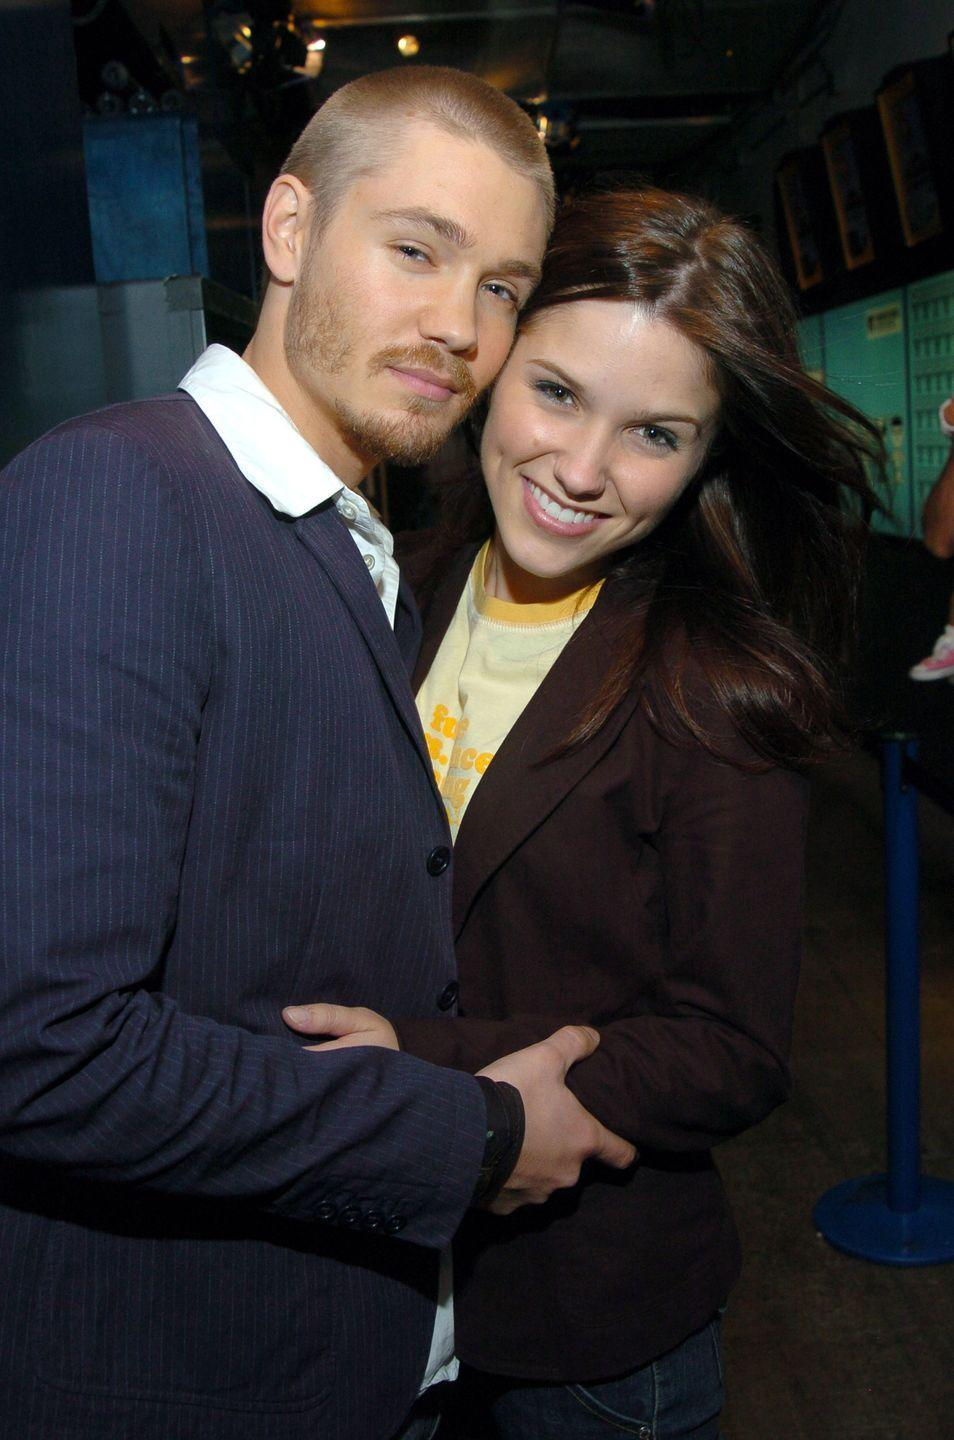 """<p>The <em>One Tree Hill</em> costars <a href=""""http://people.com/celebrity/chad-michael-murray-marries-sophia-bush/"""" rel=""""nofollow noopener"""" target=""""_blank"""" data-ylk=""""slk:tied the knot"""" class=""""link rapid-noclick-resp"""">tied the knot</a> in a Santa Monica ceremony with handwritten vows in April 2005. Only five months later, they <a href=""""http://people.com/celebrity/chad-michael-murray-sophia-bush-split/"""" rel=""""nofollow noopener"""" target=""""_blank"""" data-ylk=""""slk:announced"""" class=""""link rapid-noclick-resp"""">announced</a> their separation. In a 2017 <a href=""""https://www.cosmopolitan.com/sex-love/a8579094/why-to-stop-seeking-the-one/"""" rel=""""nofollow noopener"""" target=""""_blank"""" data-ylk=""""slk:essay for Cosmo"""" class=""""link rapid-noclick-resp"""">essay for <em>Cosmo</em></a>, Sophia wrote that the """"trauma of it was amplified by how public it became, which was incredibly foreign and bizarre to a girl who'd been just another college kid 24 months before her life blew up.""""</p>"""